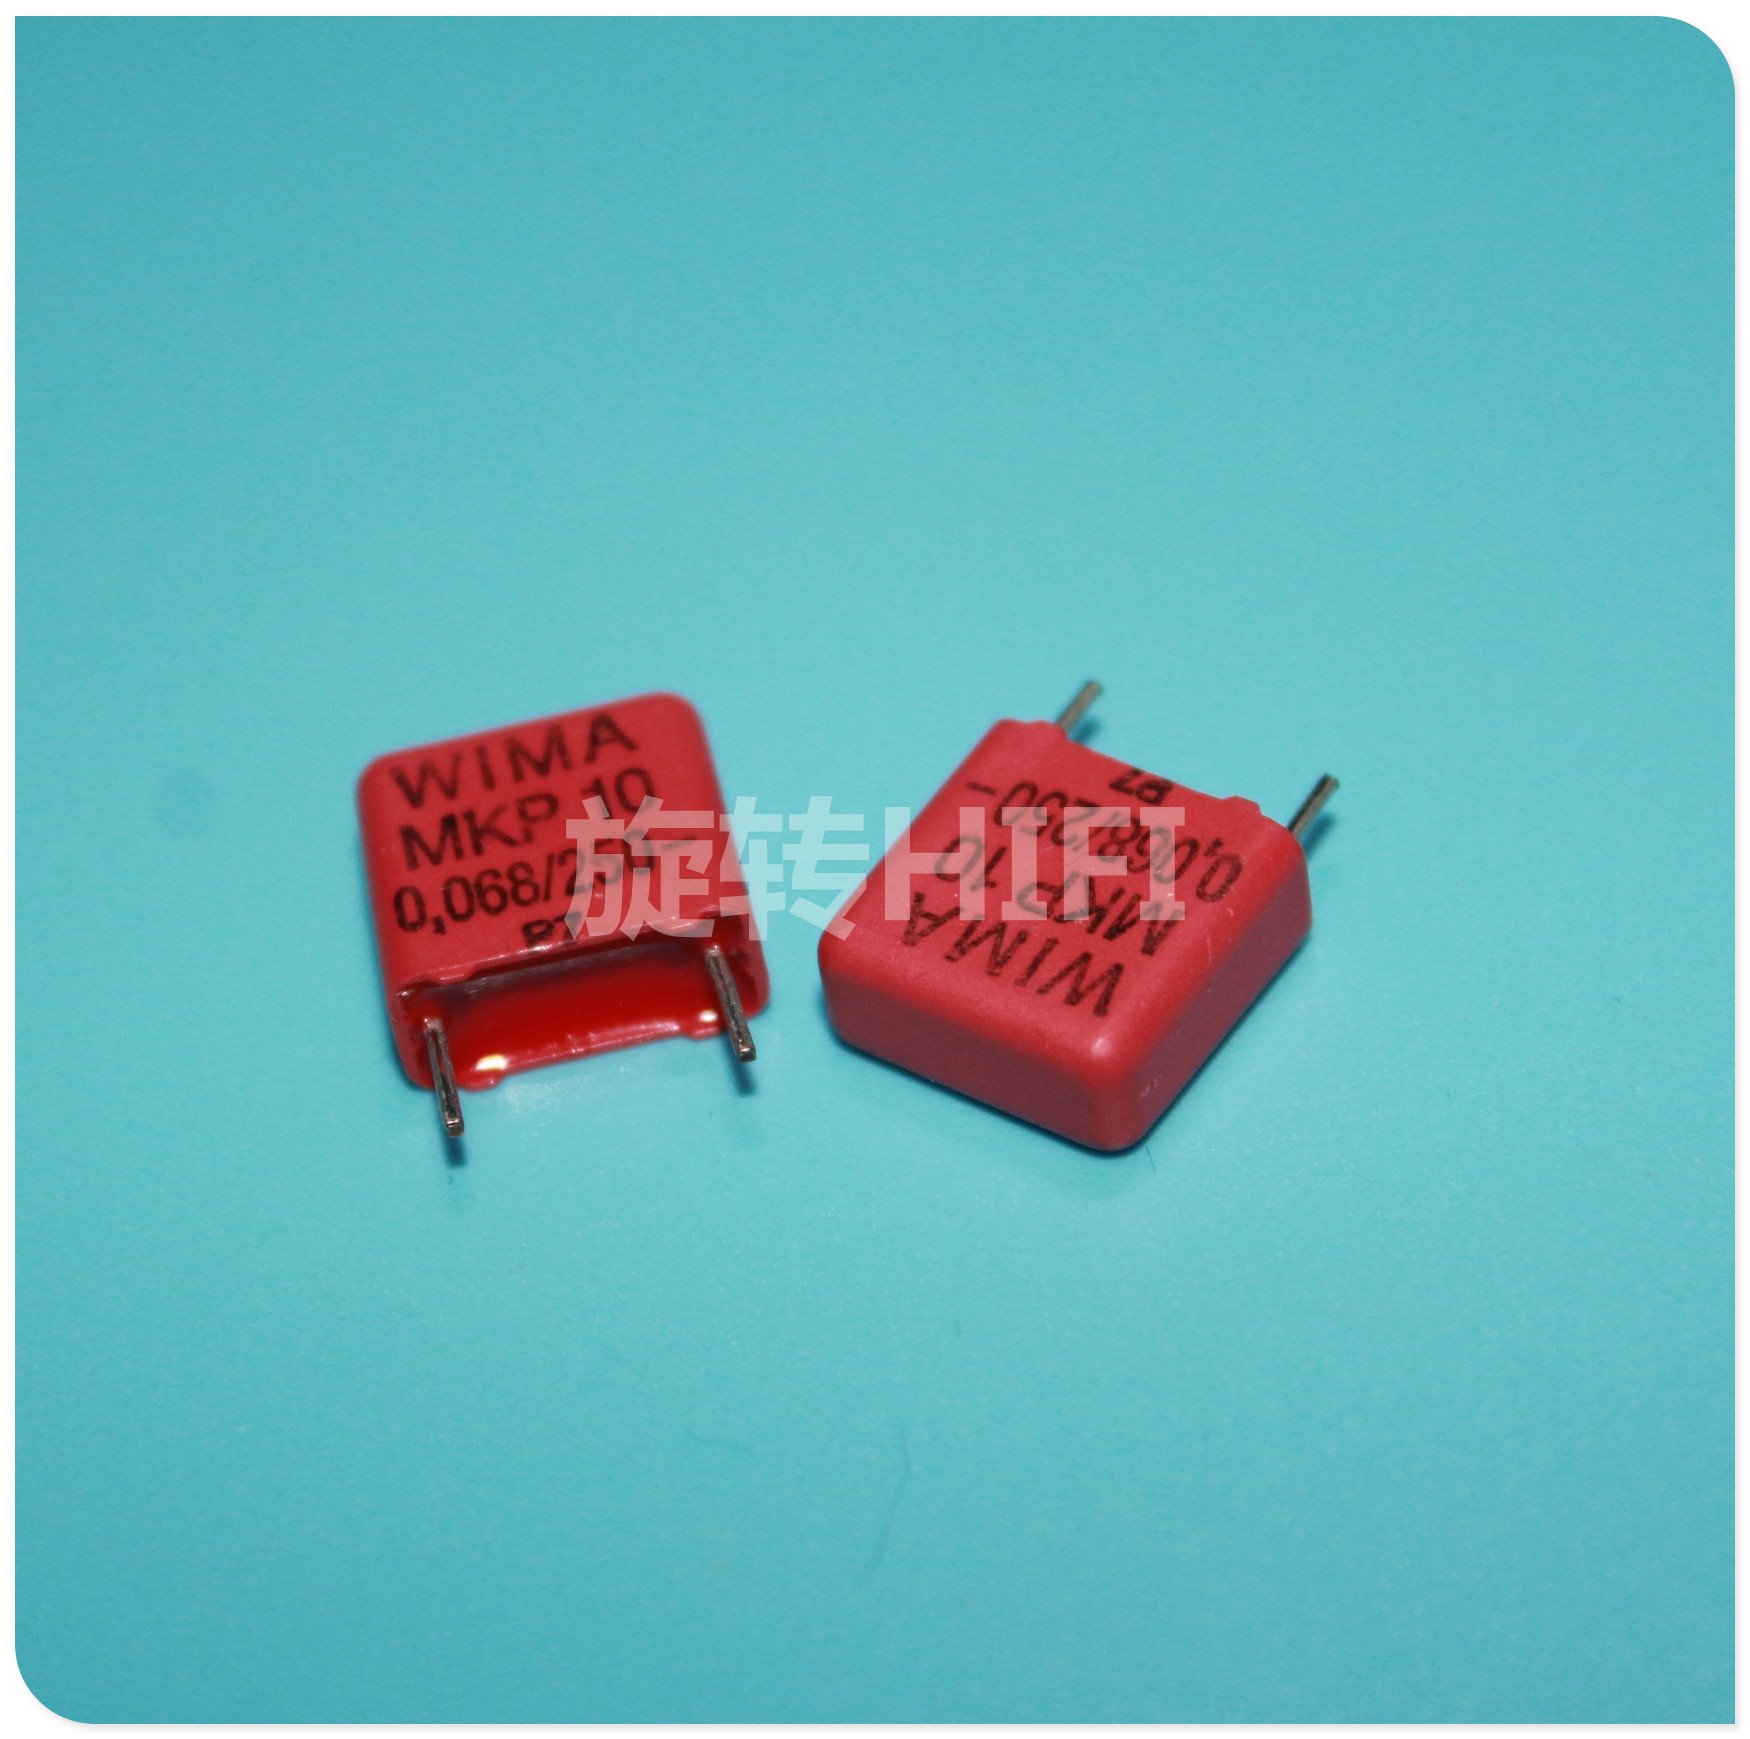 10PCS RED WIMA MKP10 0.068UF 250V P10mm Original New MKP-10 683/250V Audio 68nf Film 683 PCM10 Hot Sale 0.068uf/250v